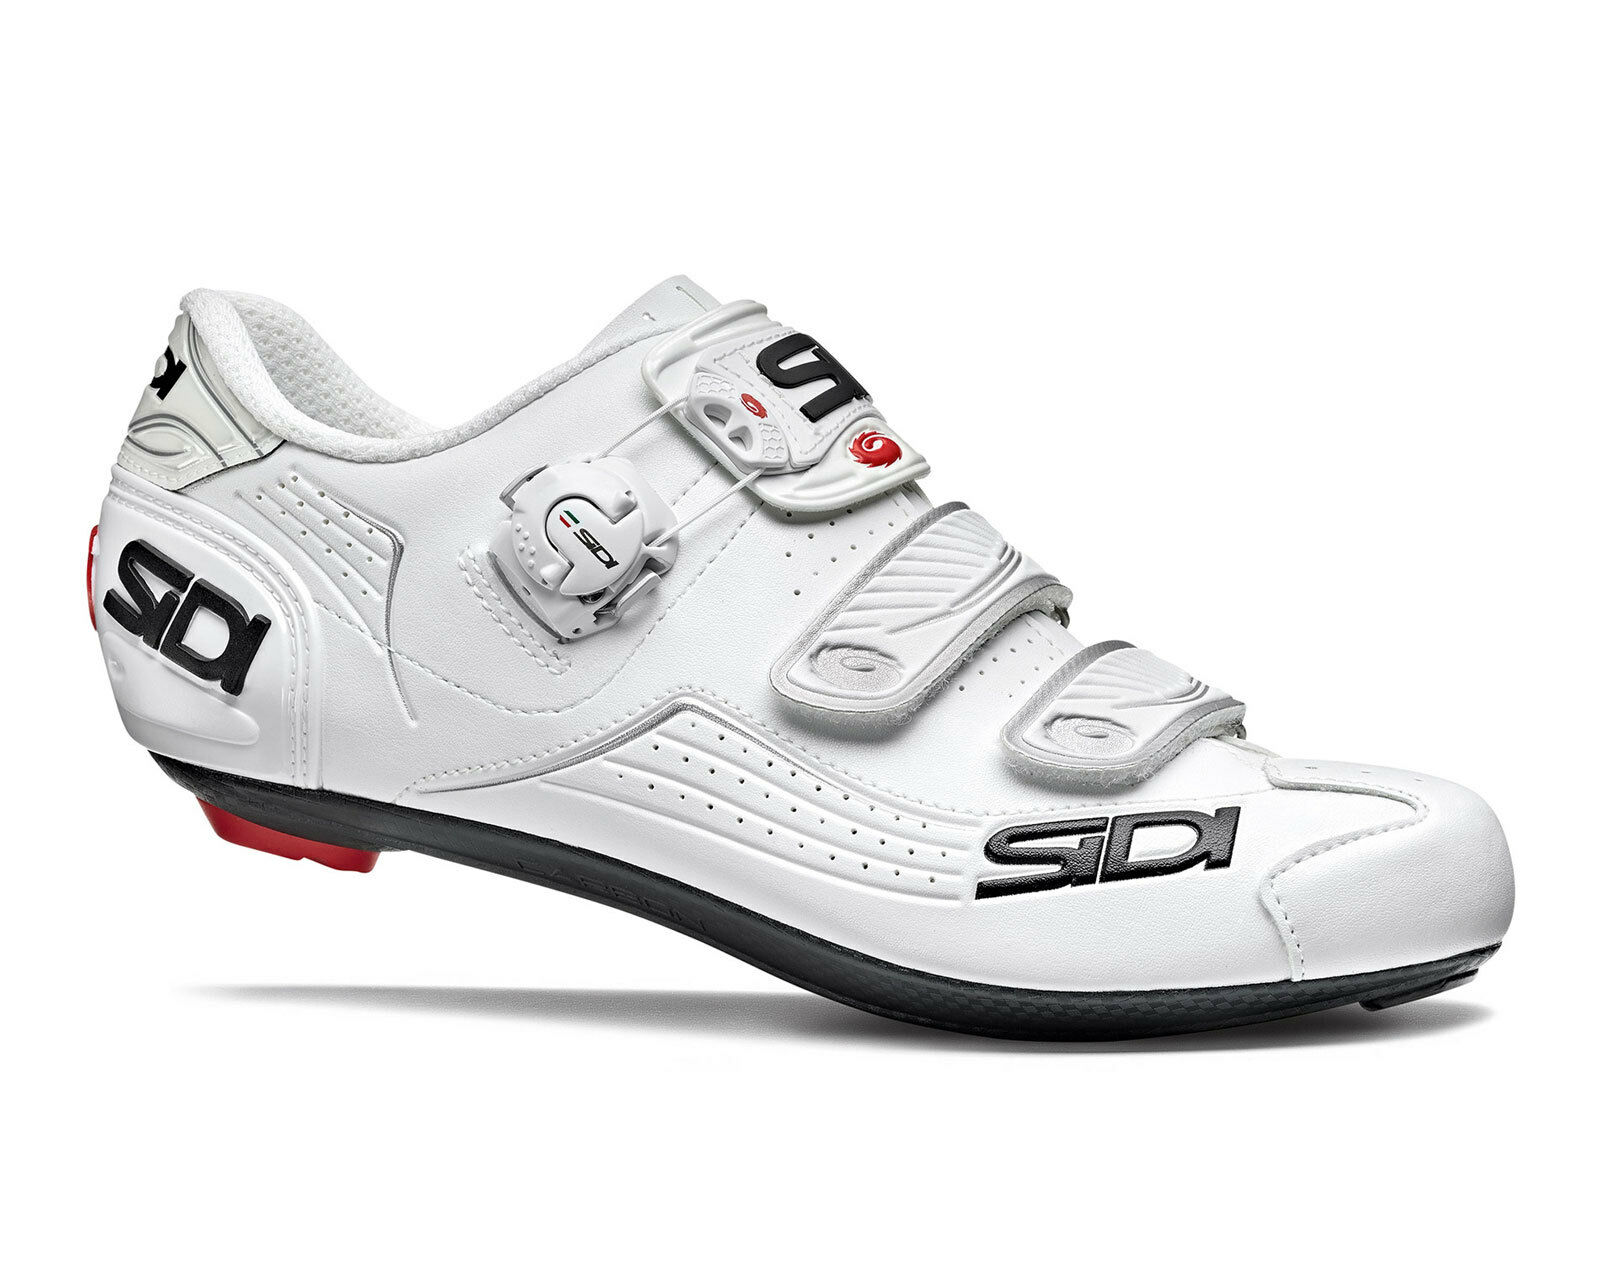 SIDI Alba Road Cycling shoes  - White White  special offer